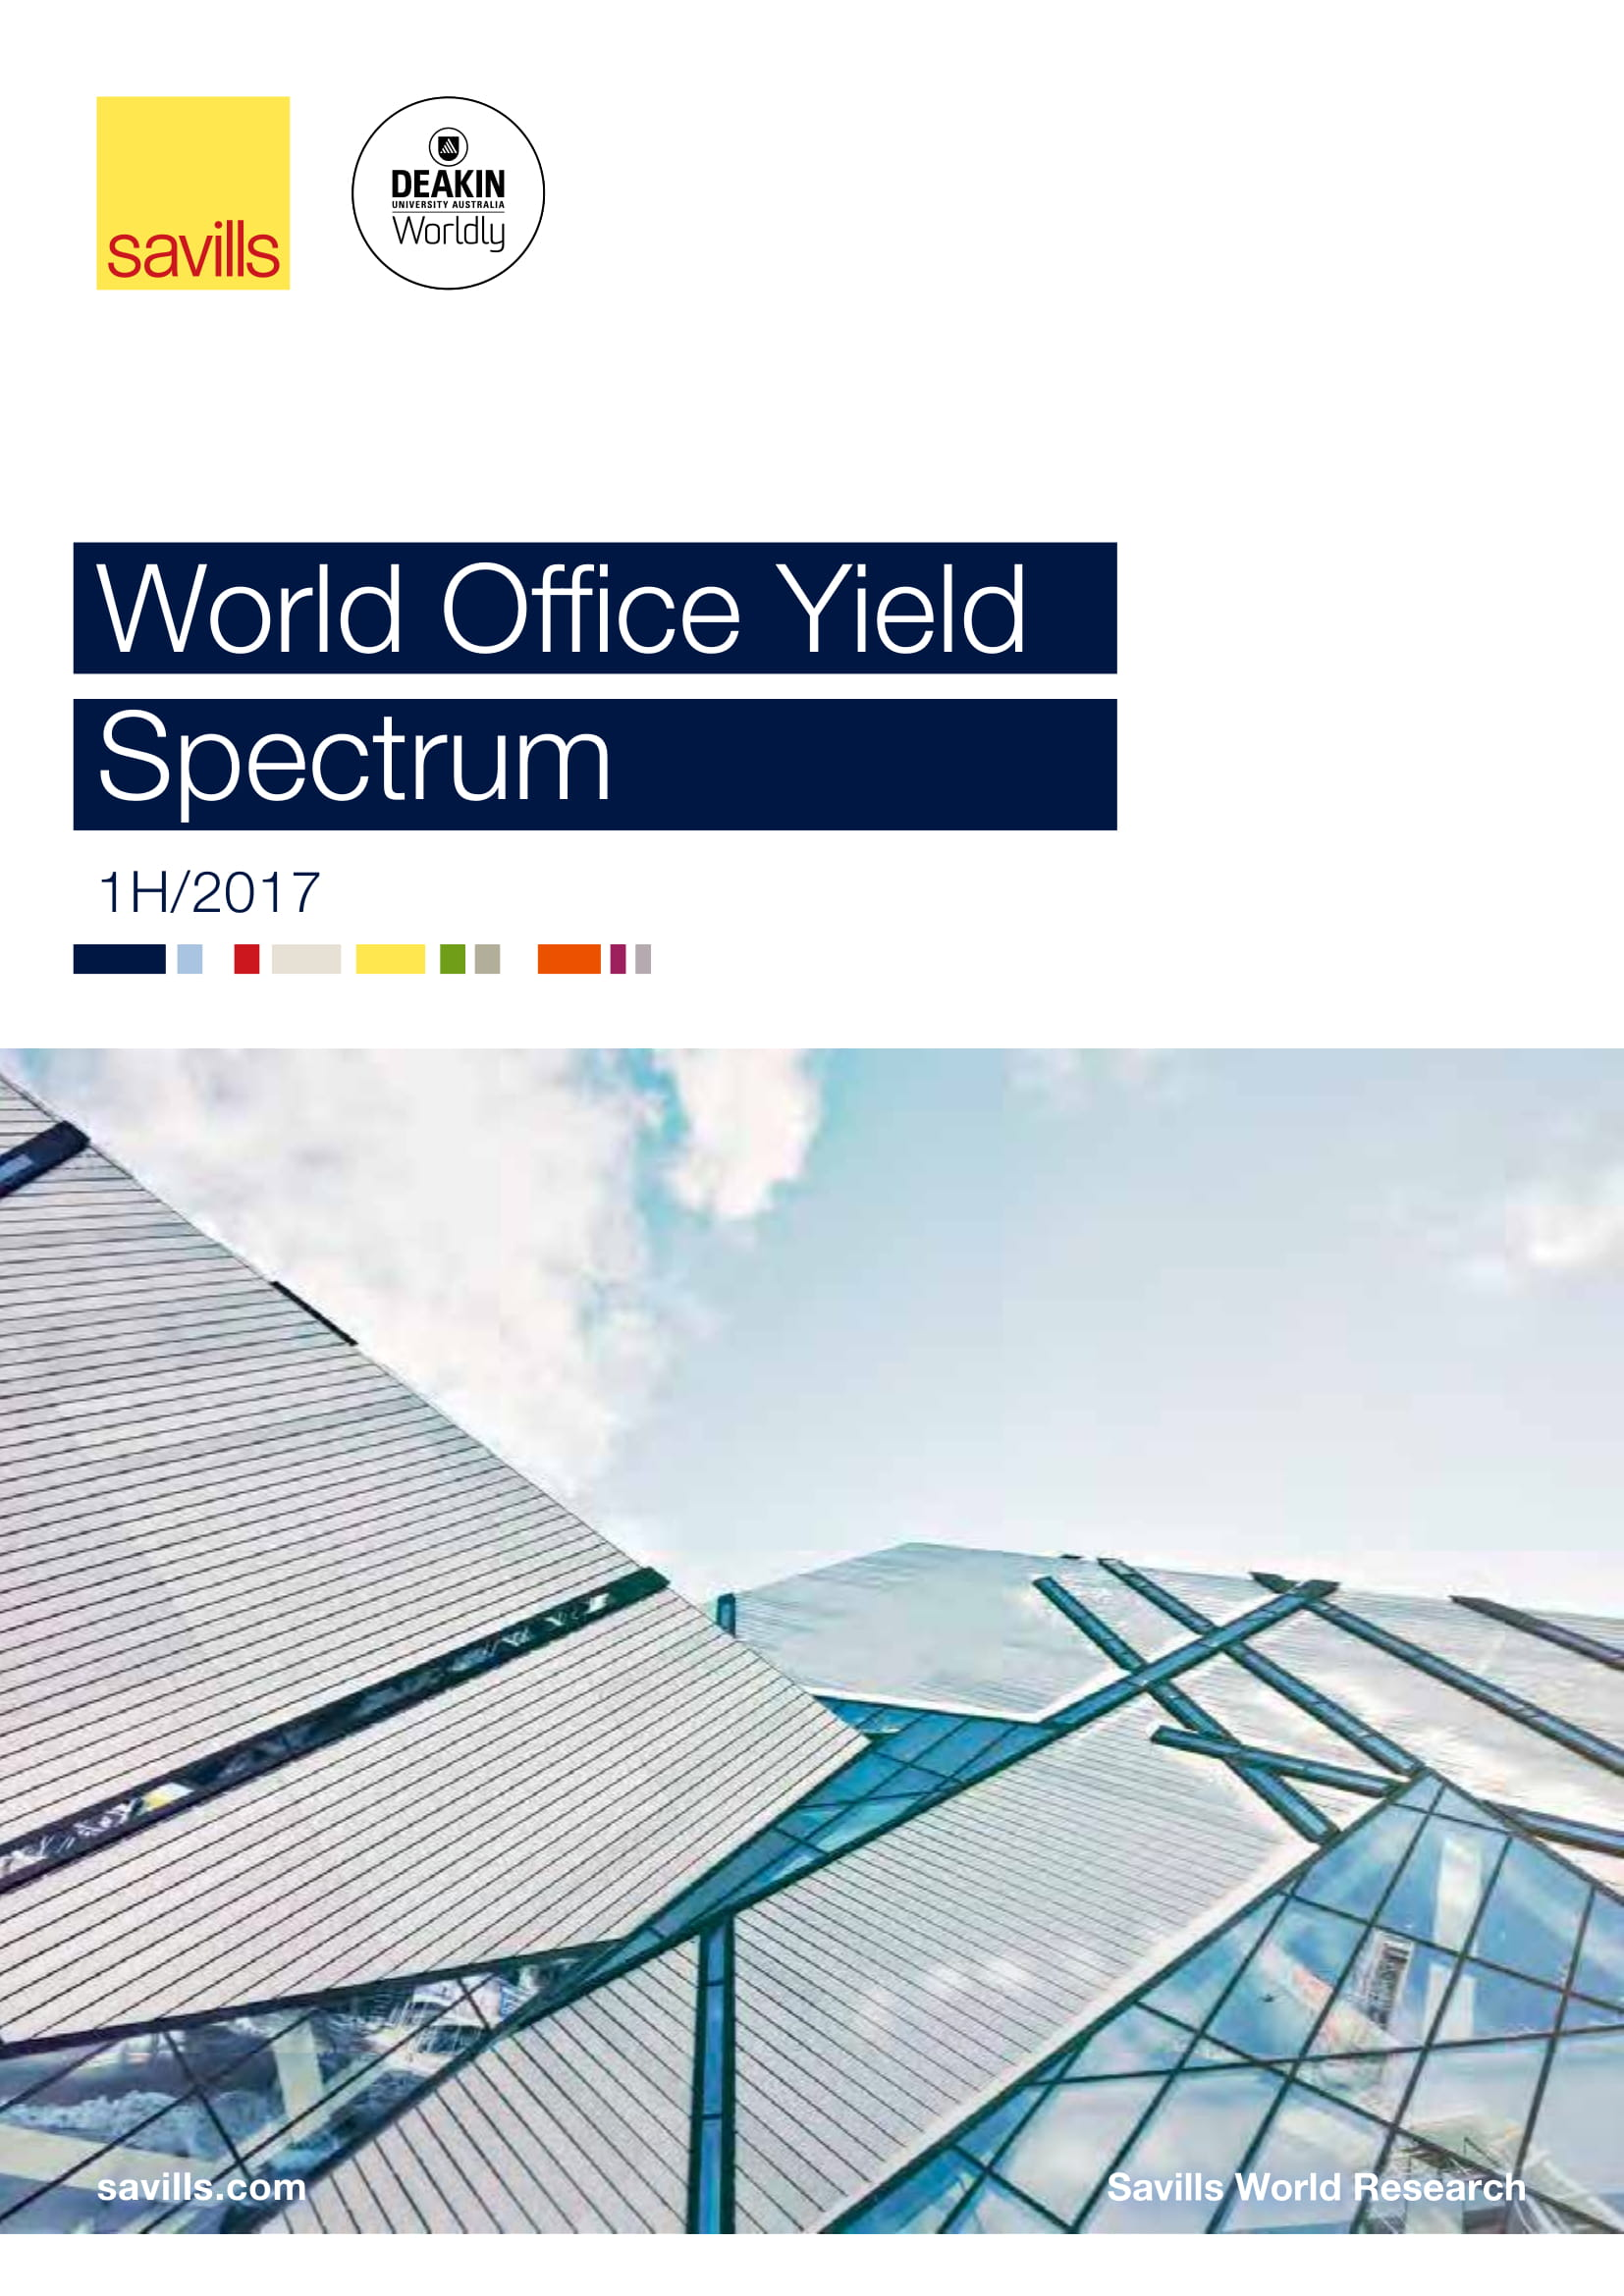 World Office Yield Spectrum 1H 2017